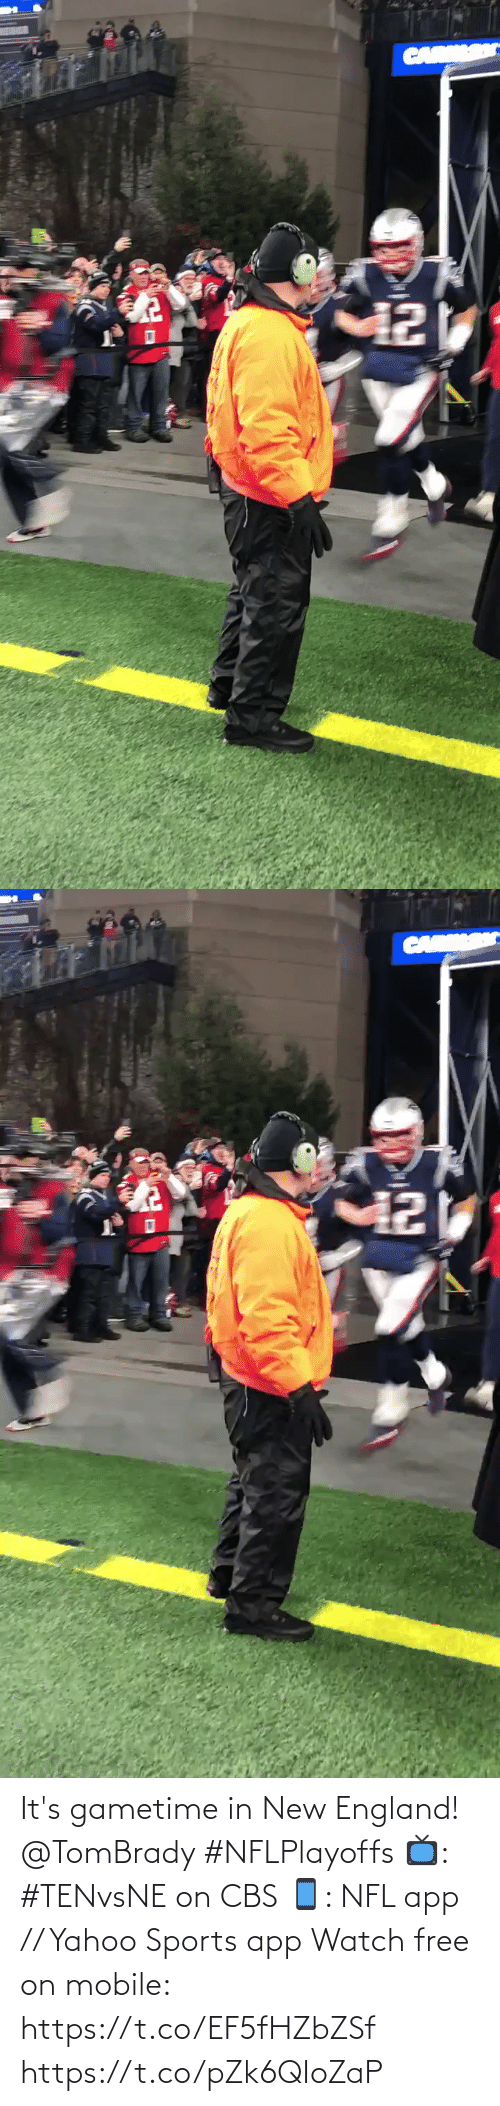 car: CAR   CARK It's gametime in New England! @TomBrady #NFLPlayoffs  📺: #TENvsNE on CBS 📱: NFL app // Yahoo Sports app Watch free on mobile: https://t.co/EF5fHZbZSf https://t.co/pZk6QIoZaP